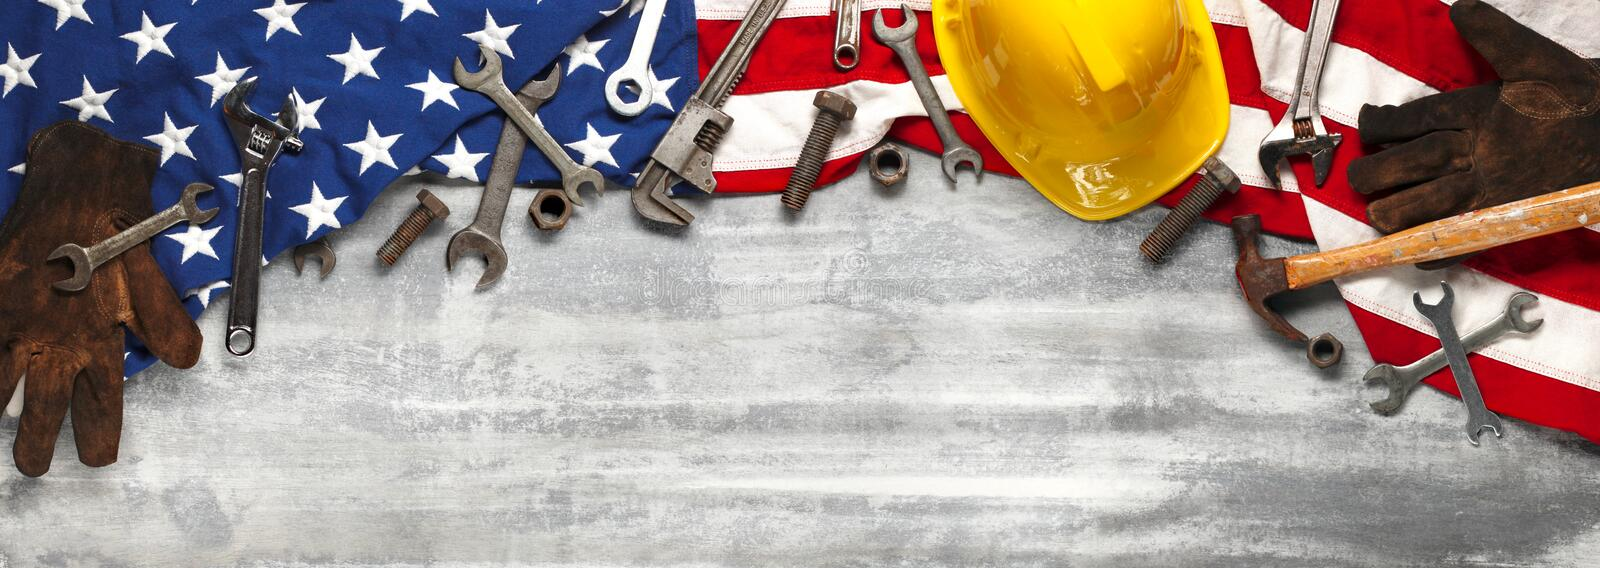 Labor day or American labor concept with construction and manufacturing tools on patriotic US, USA, American flag on wooden. Labor day or American labor concept royalty free stock image